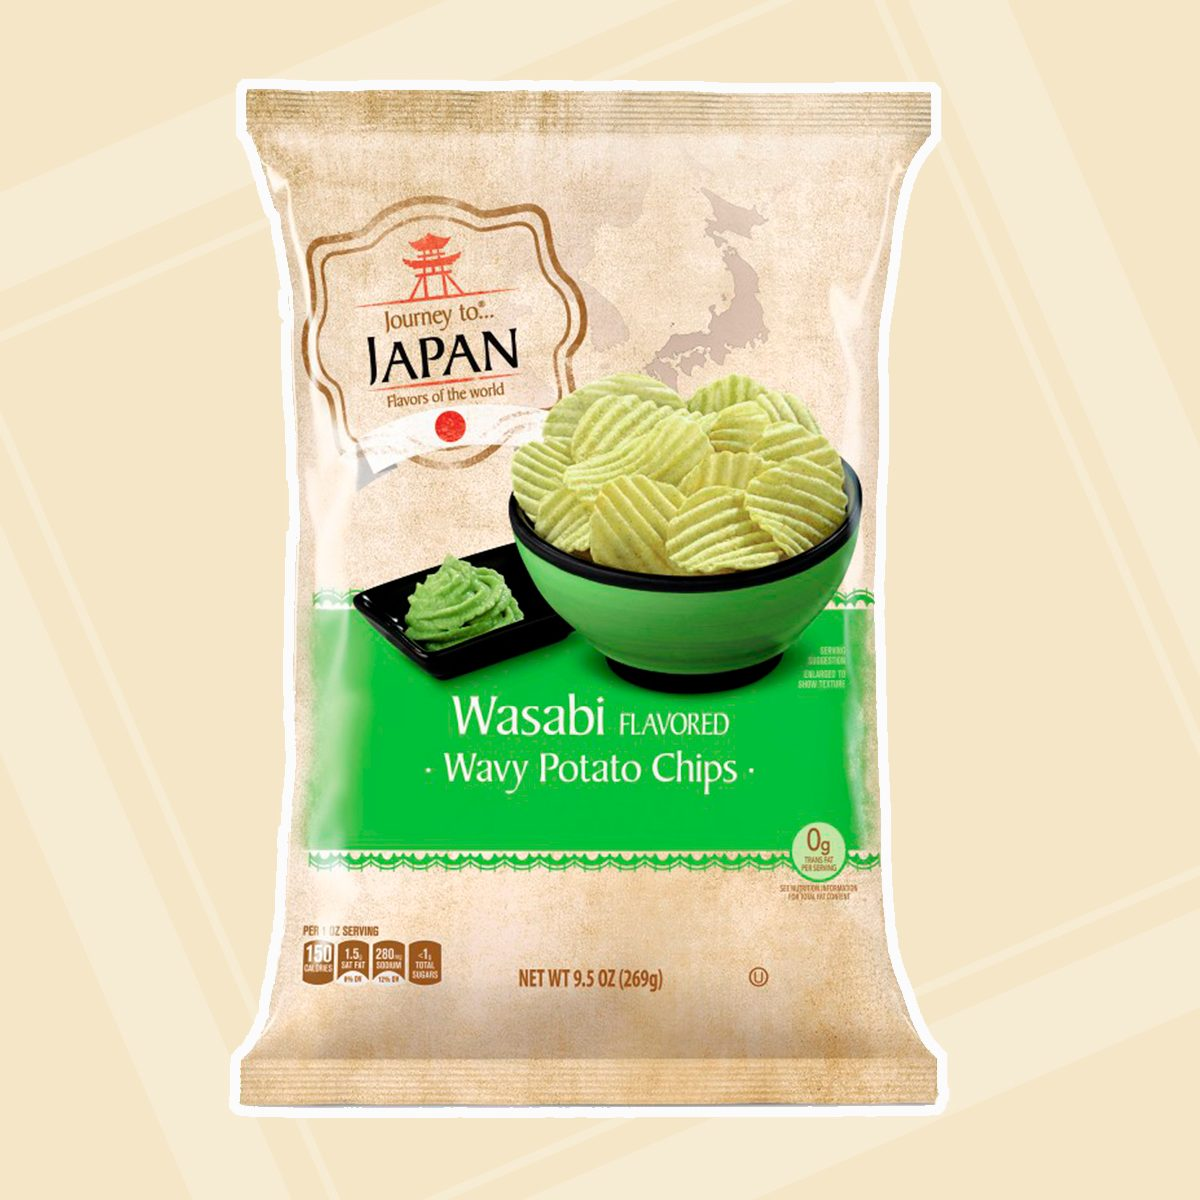 Journey To Wavy Potato Chips Wasabi